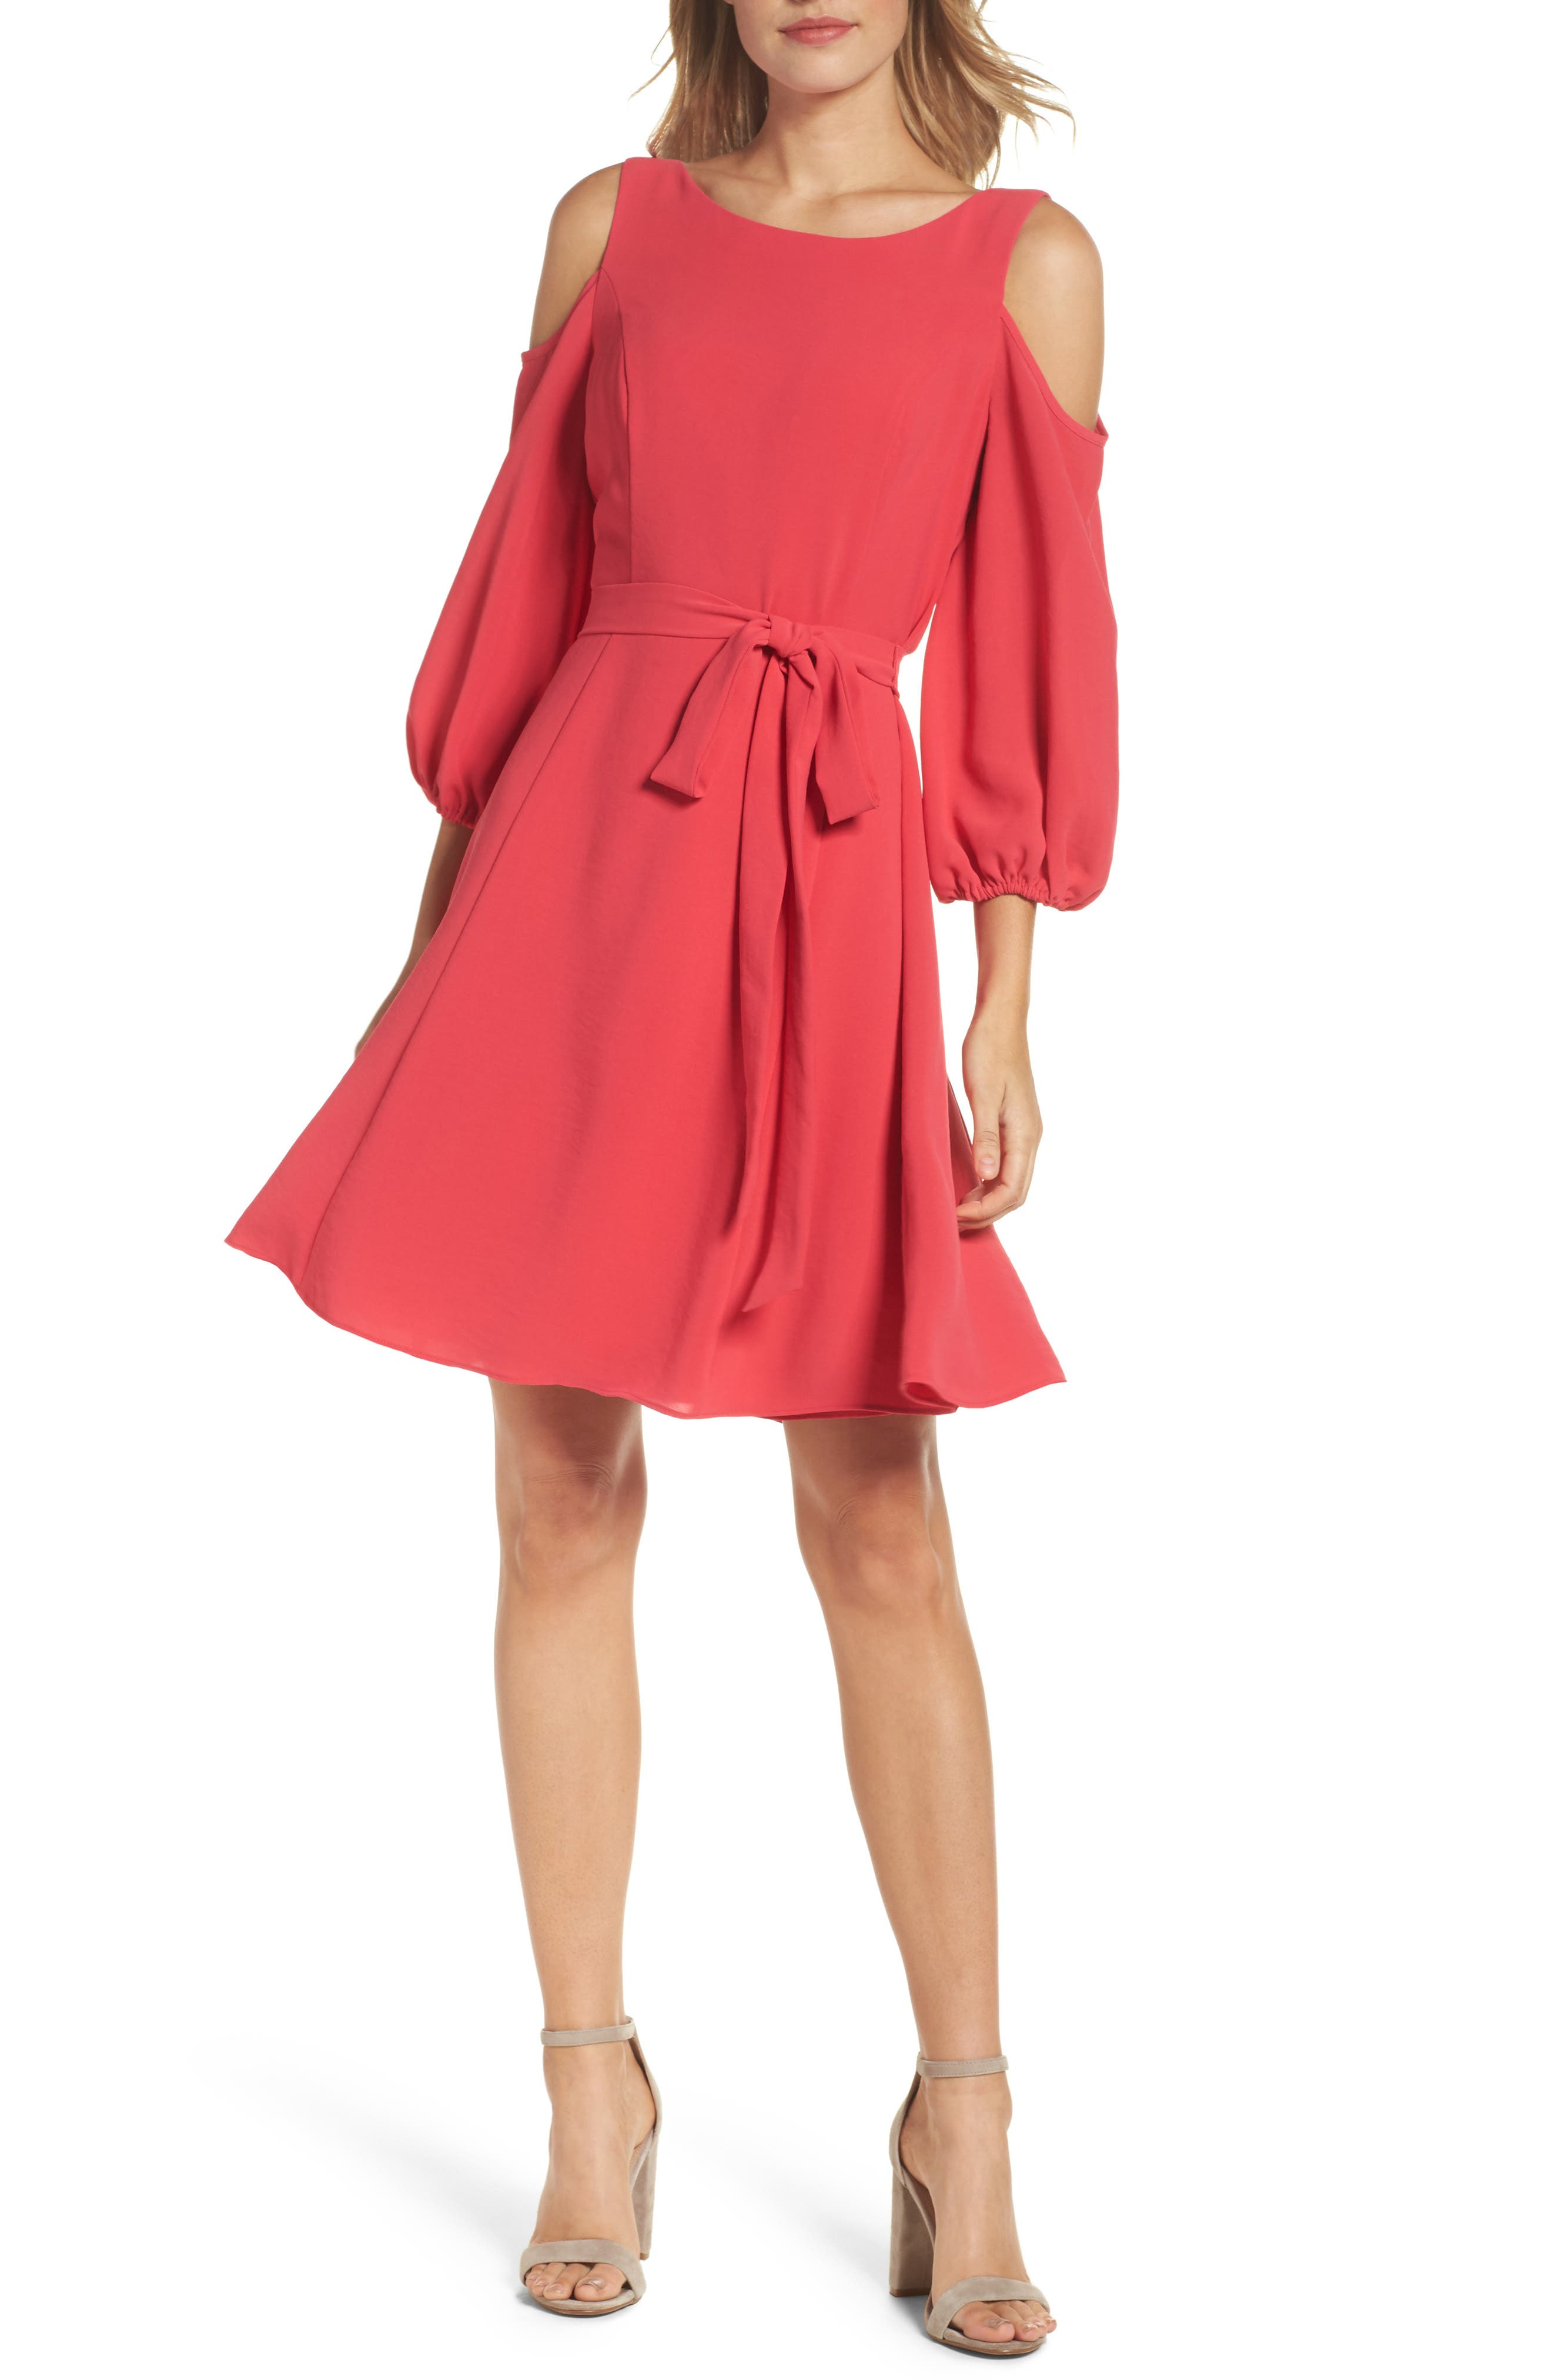 Main Image - Adrianna Papell Cold Shoulder Dress (Regular & Petite)